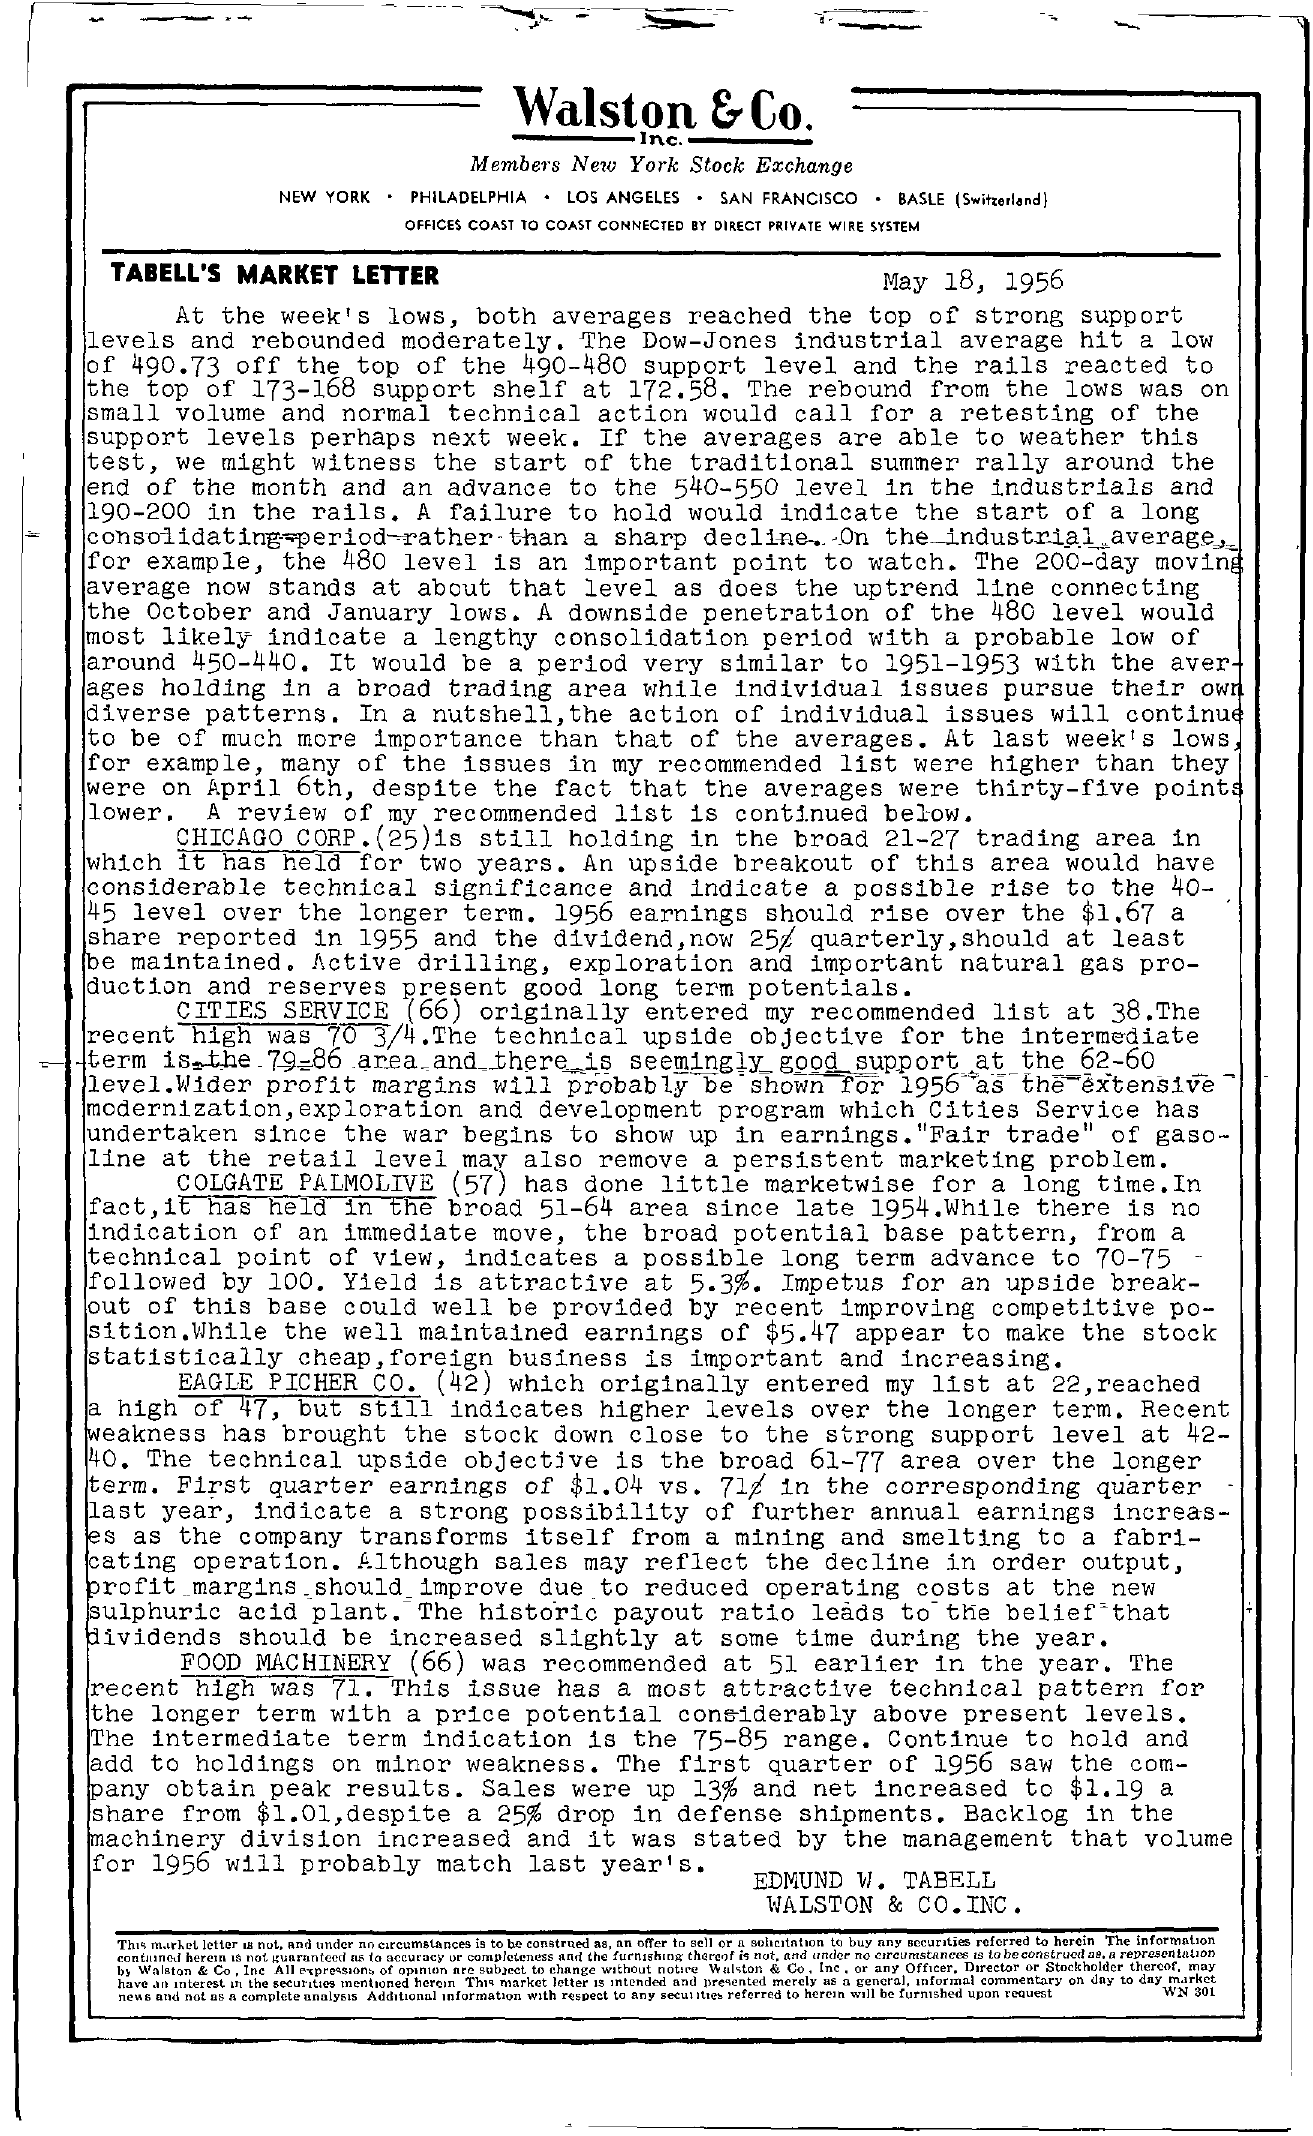 Tabell's Market Letter - May 18, 1956